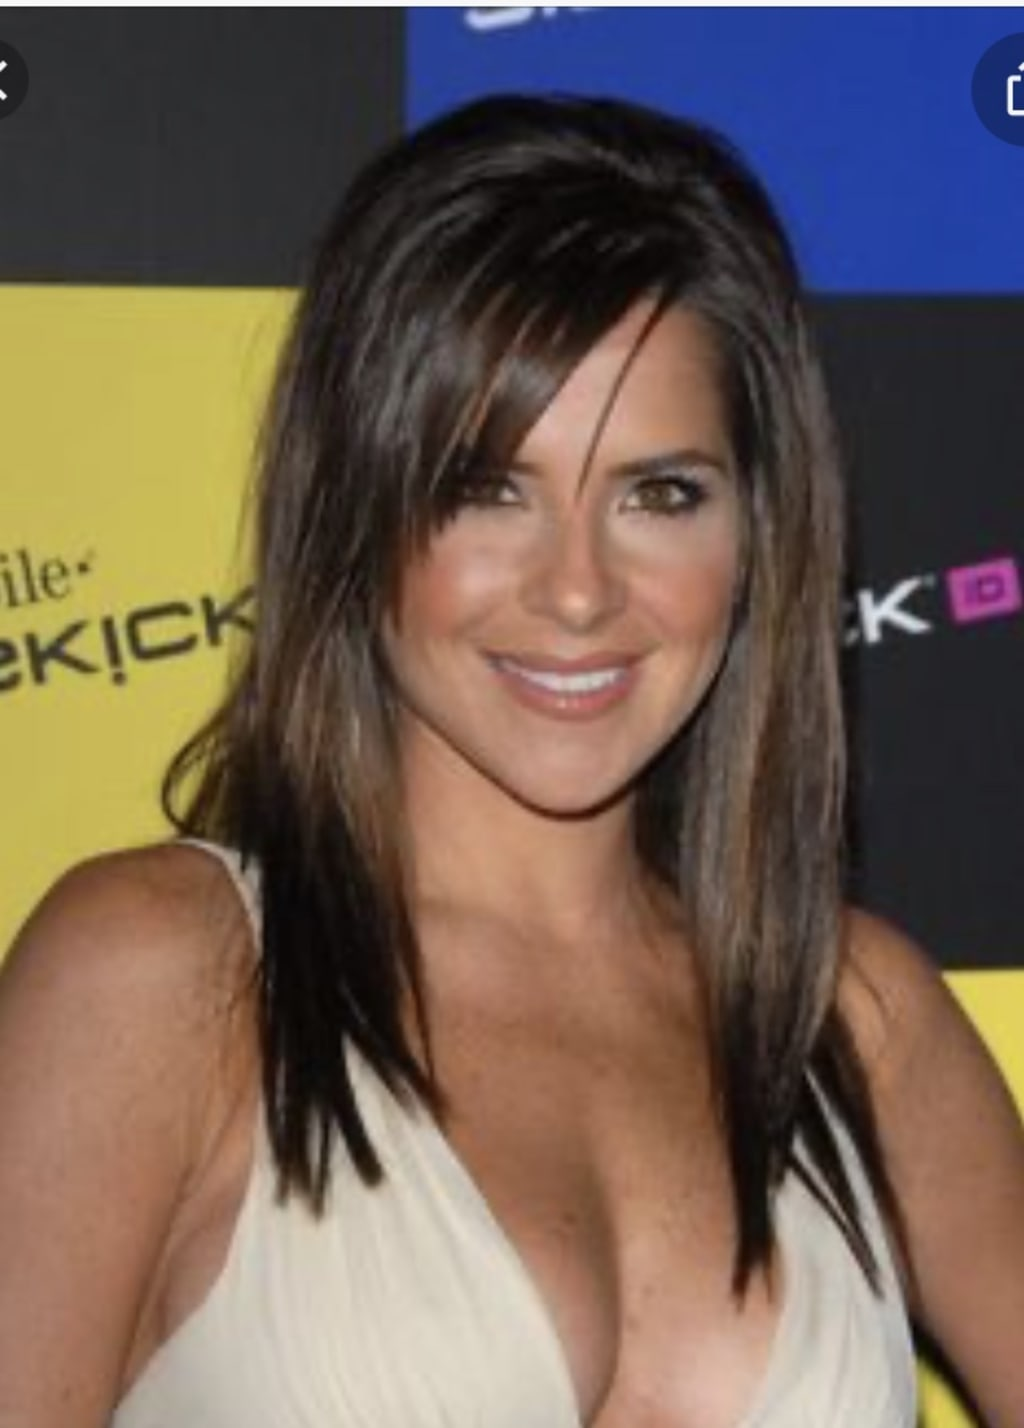 Kelly Monaco's mom reveals COVID mask triggered her claustrophobia